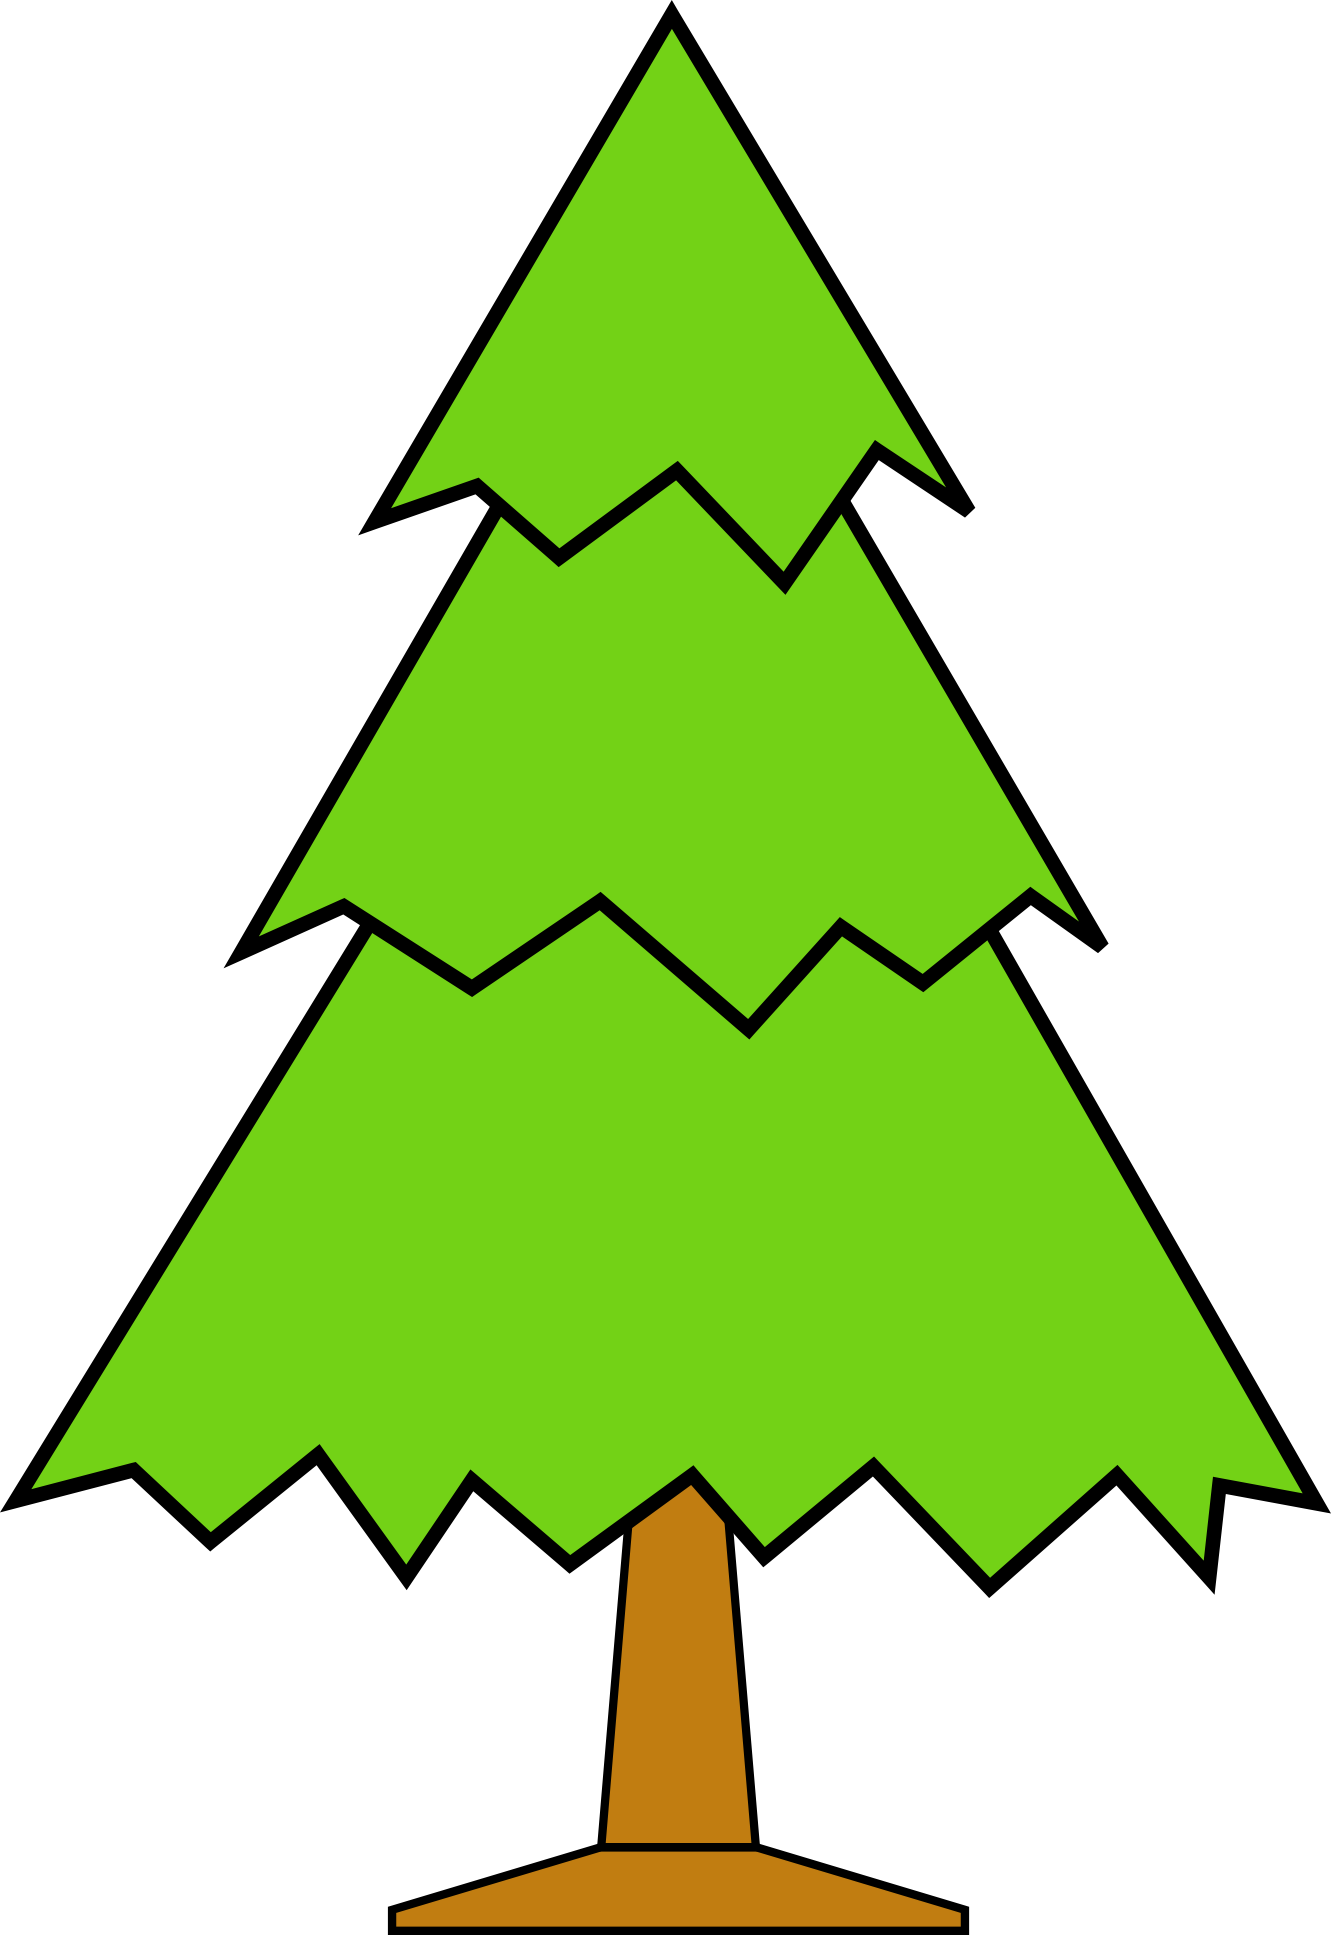 Christmas tree image clipart png transparent library Clip Art Charlie Brown Christmas Tree | Clipart Panda - Free Clipart ... png transparent library